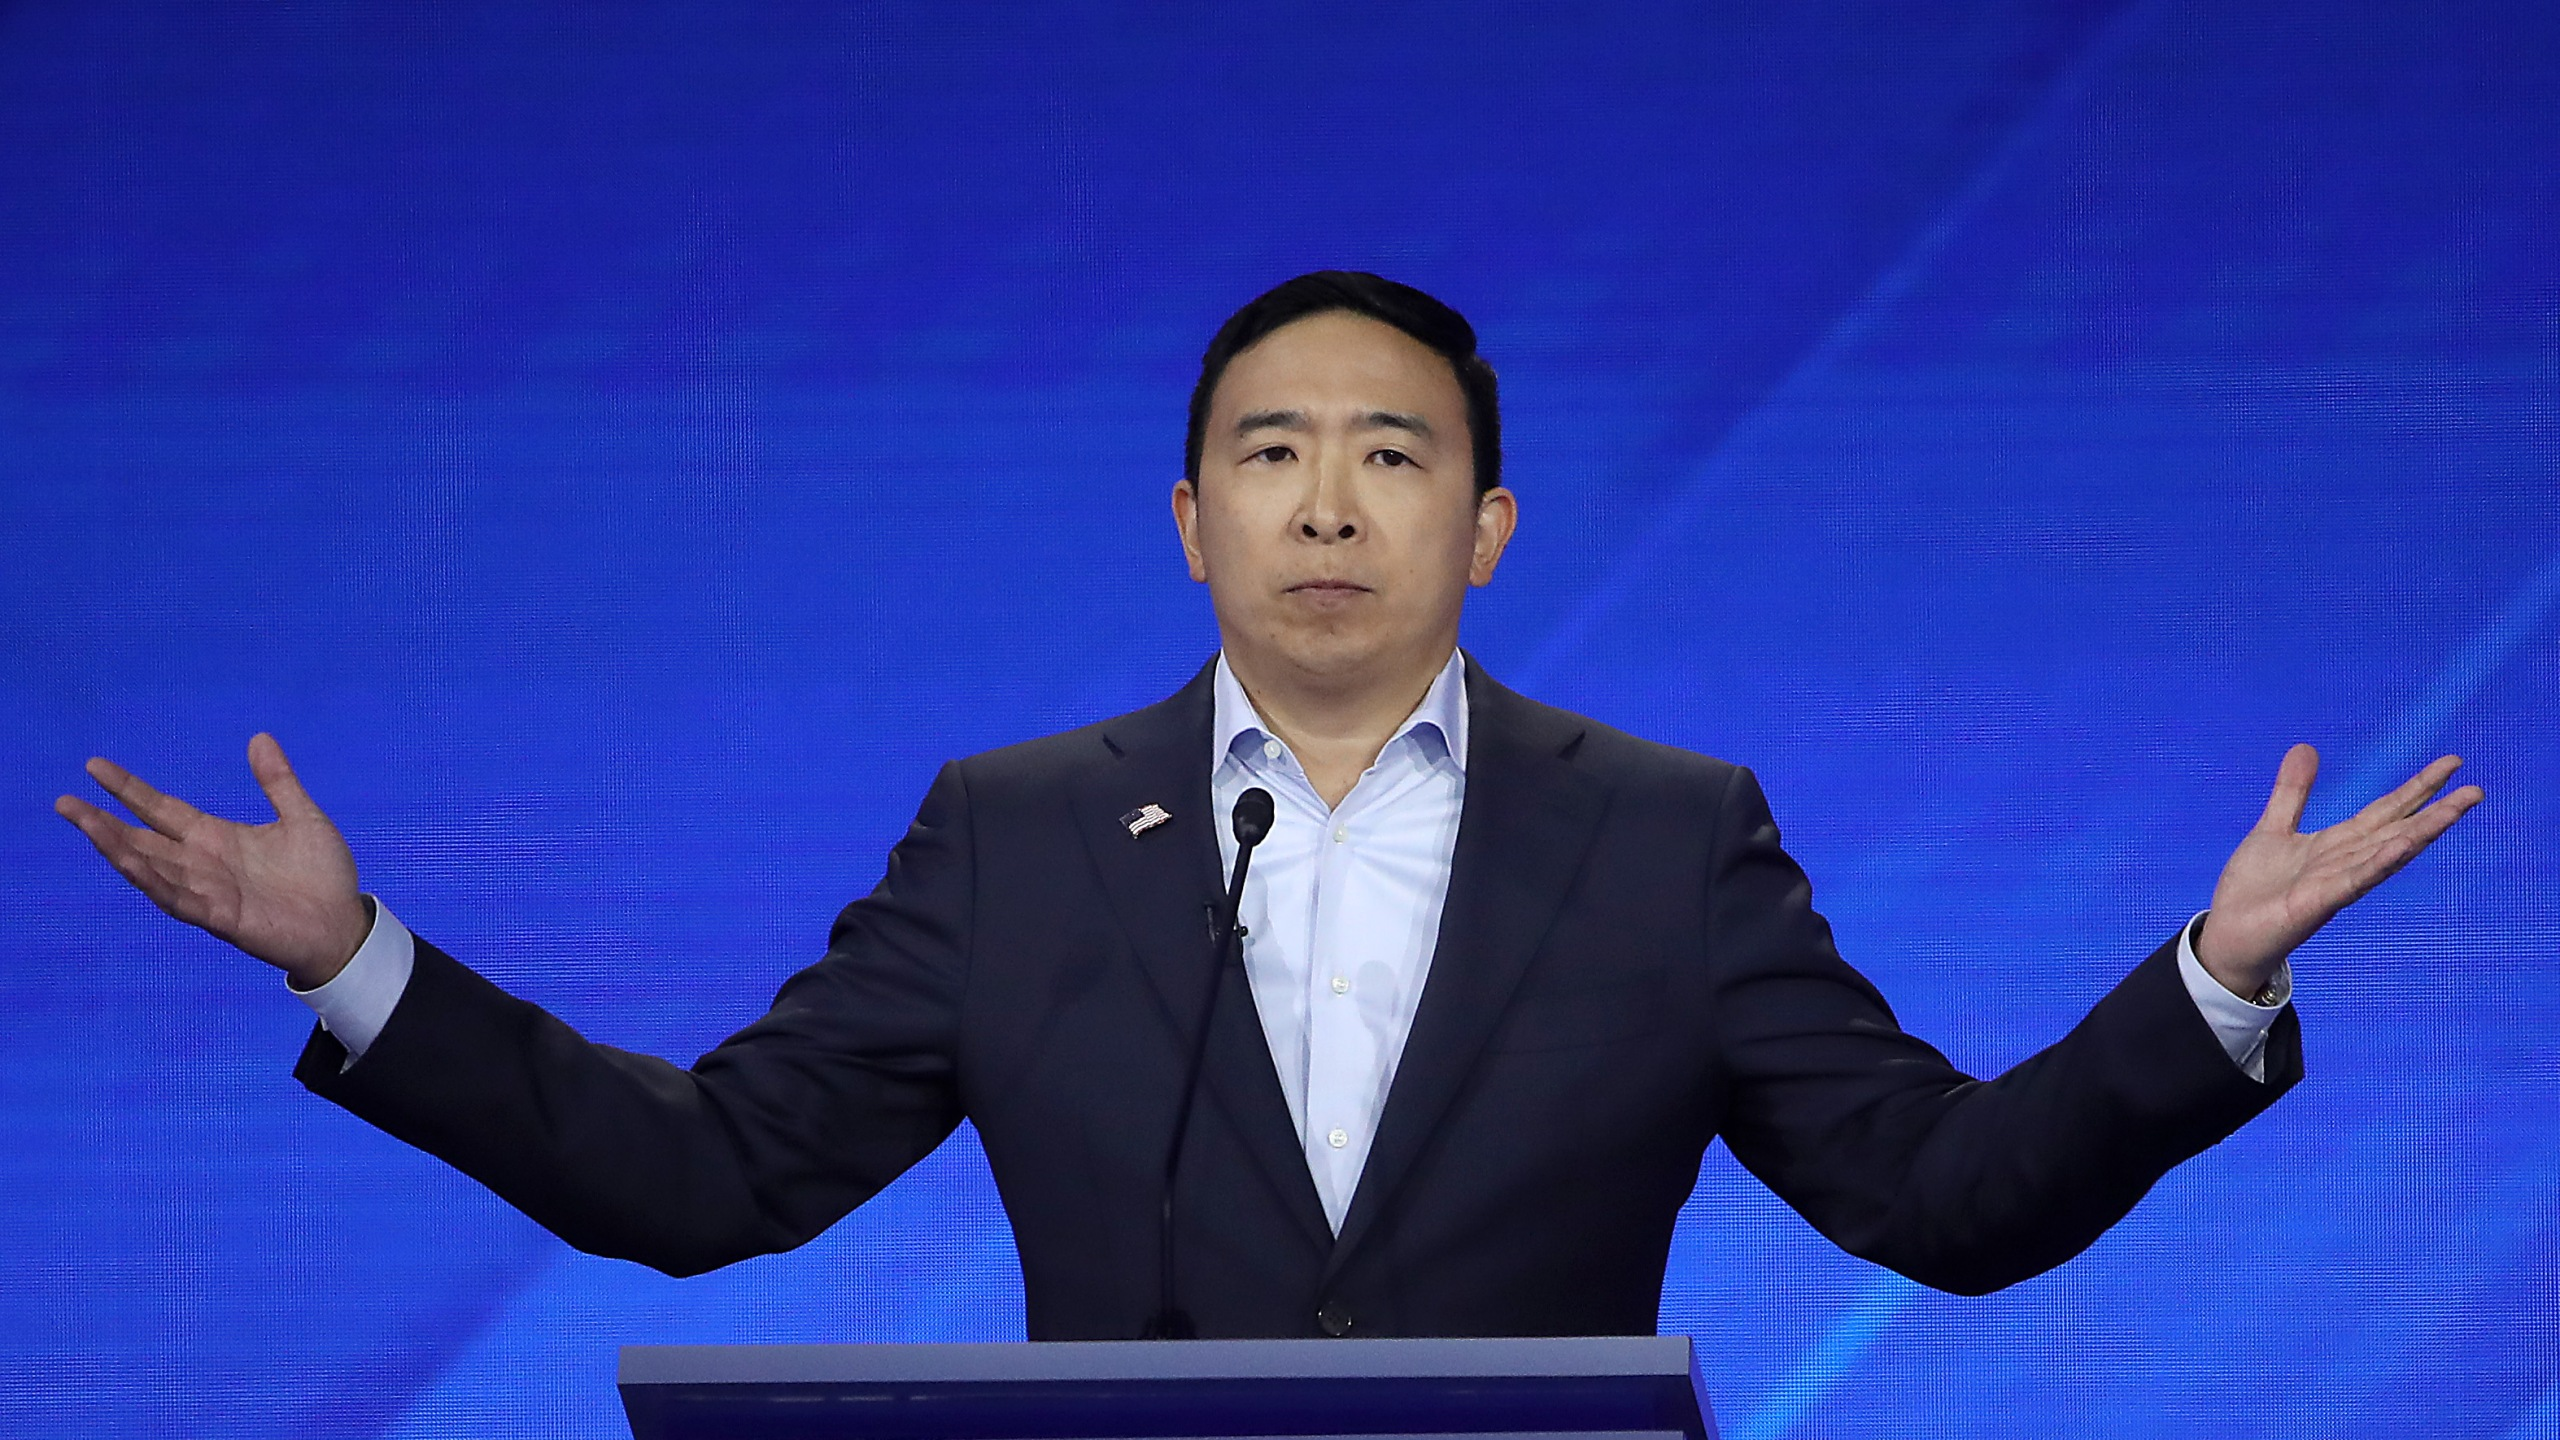 Democratic presidential candidate former tech executive Andrew Yang speaks during the Democratic Presidential Debate at Texas Southern University on Sept. 12, 2019 in Houston, Texas. (Credit: Win McNamee/Getty Images)